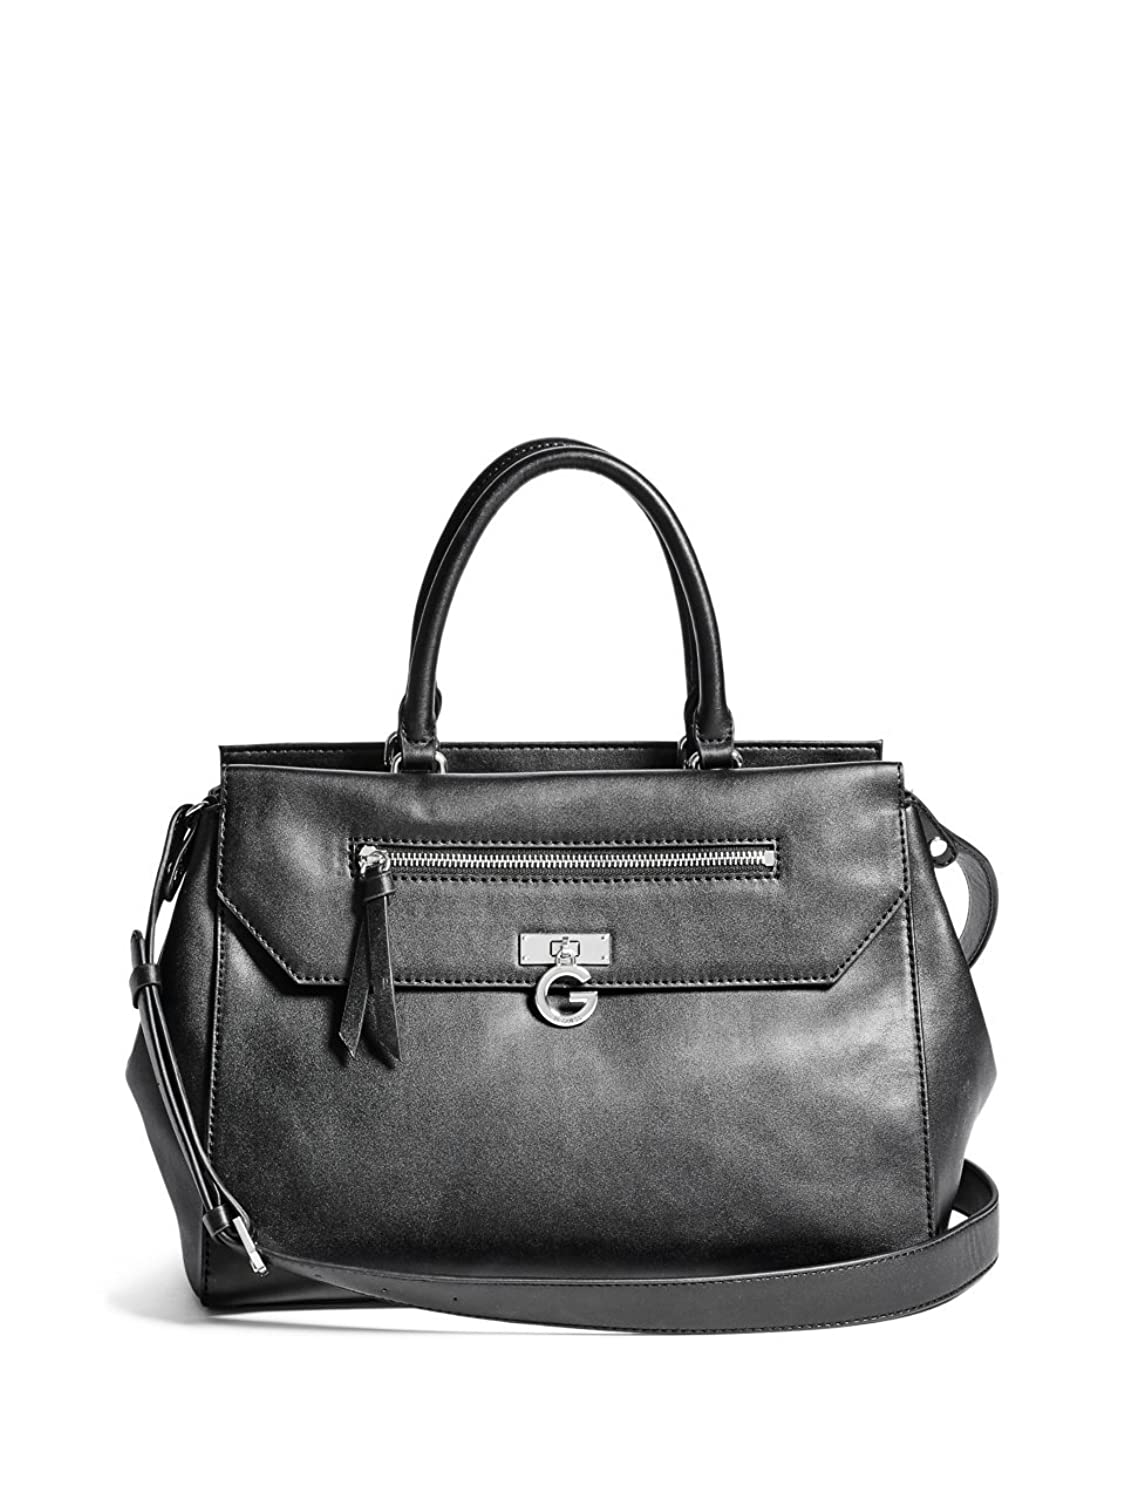 G by GUESS Women's Truro Satchel